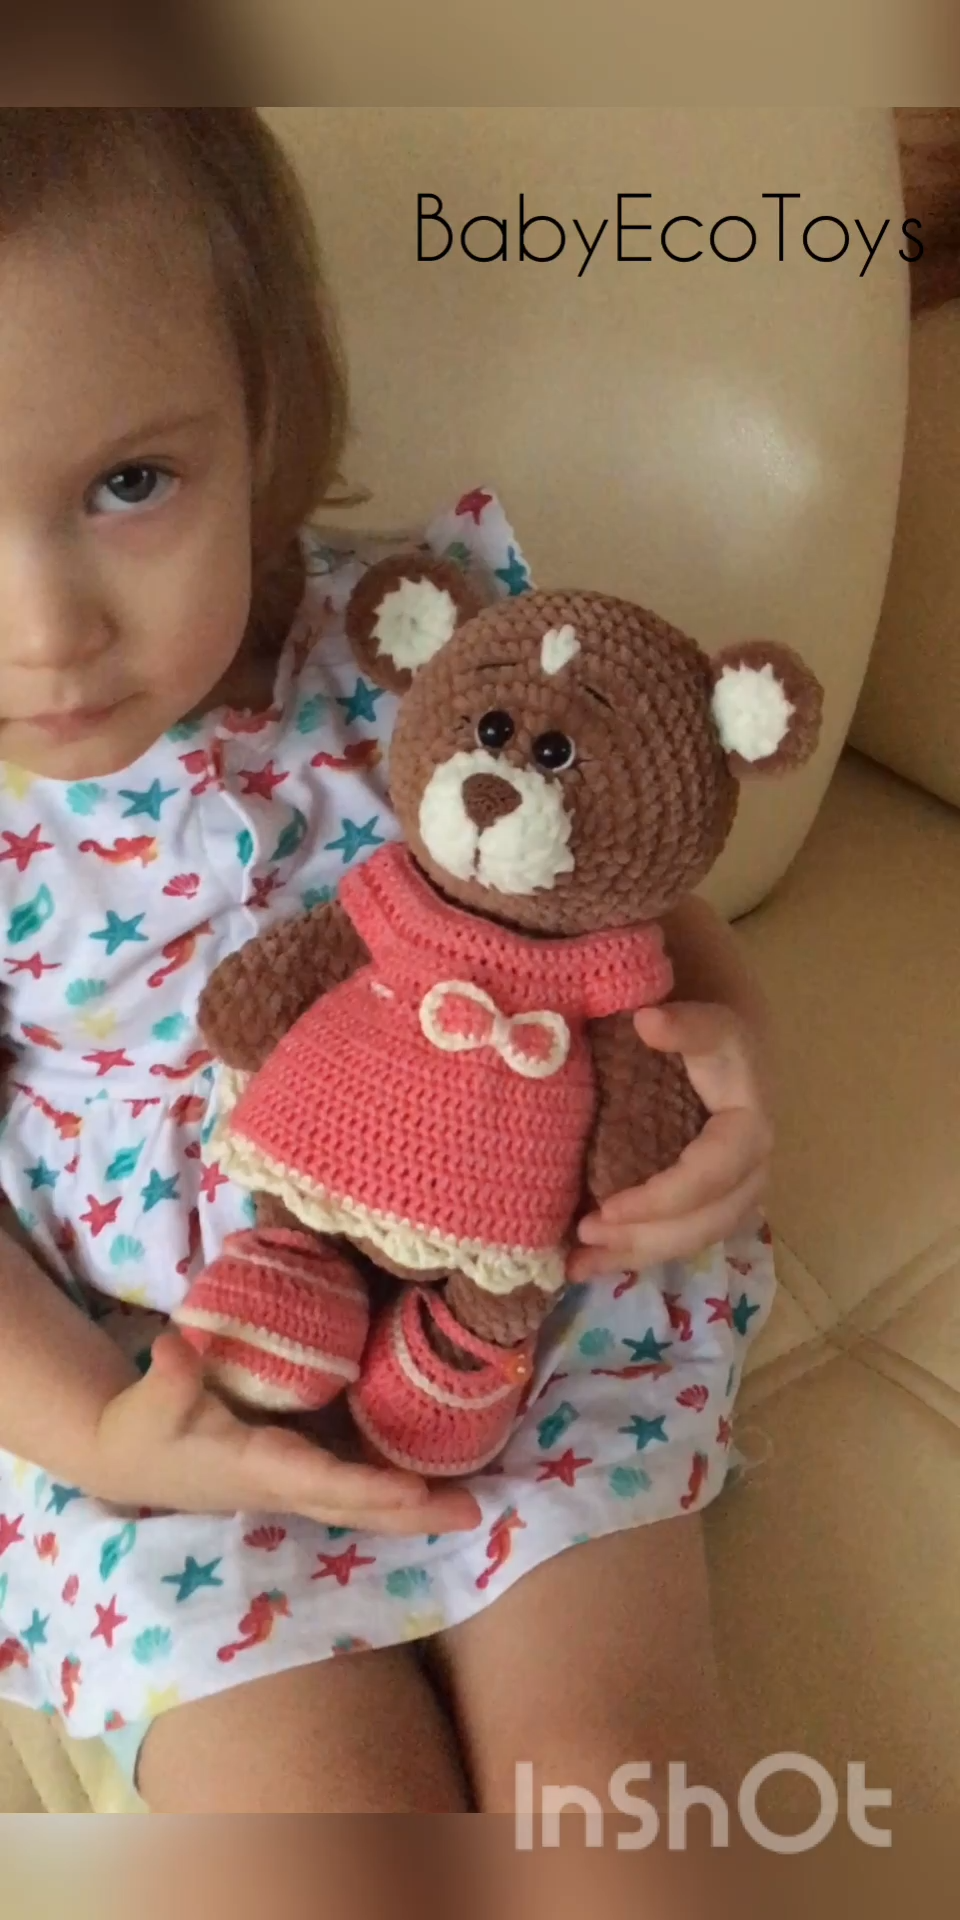 Photo of Soft stuffed bear doll / Hand-crocheted plush Teddy bears toy with outfit / Plushies